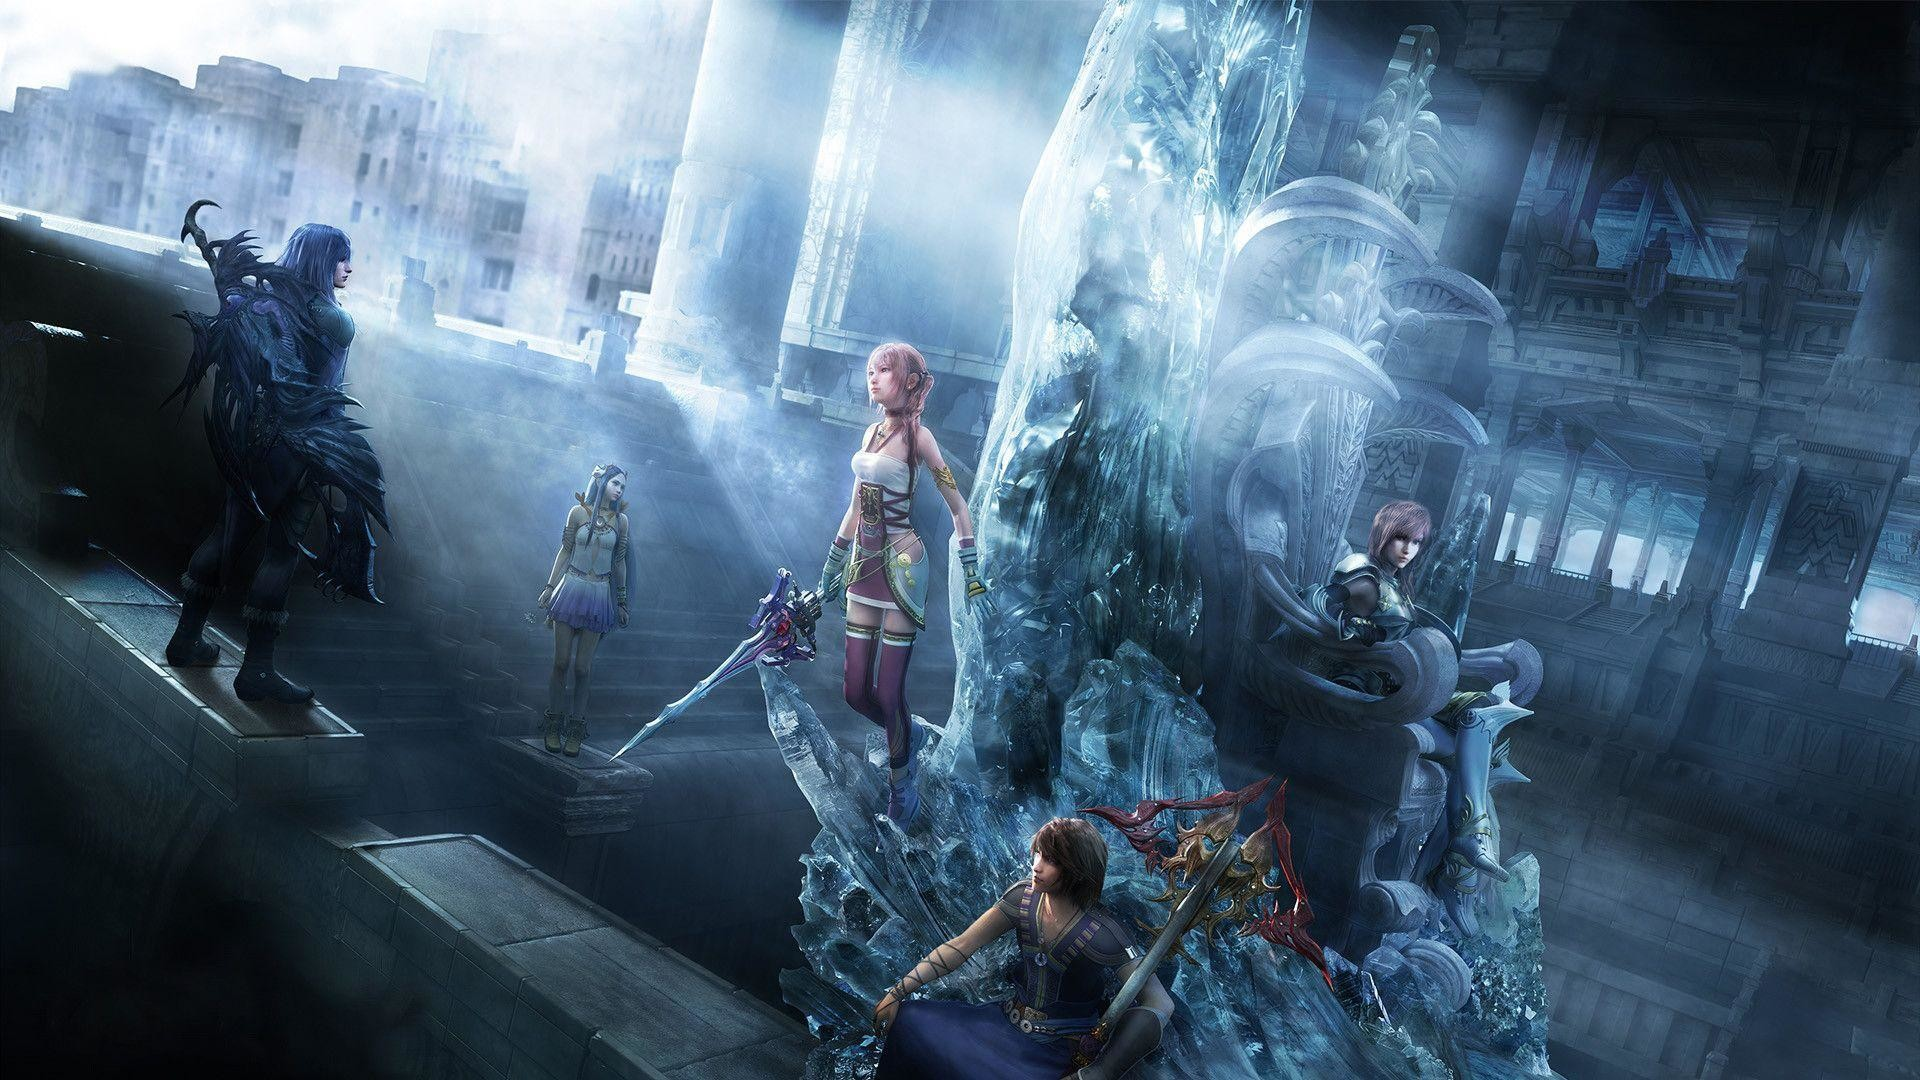 1920x1080 Wallpapers For > Final Fantasy 13 2 Wallpaper Hd